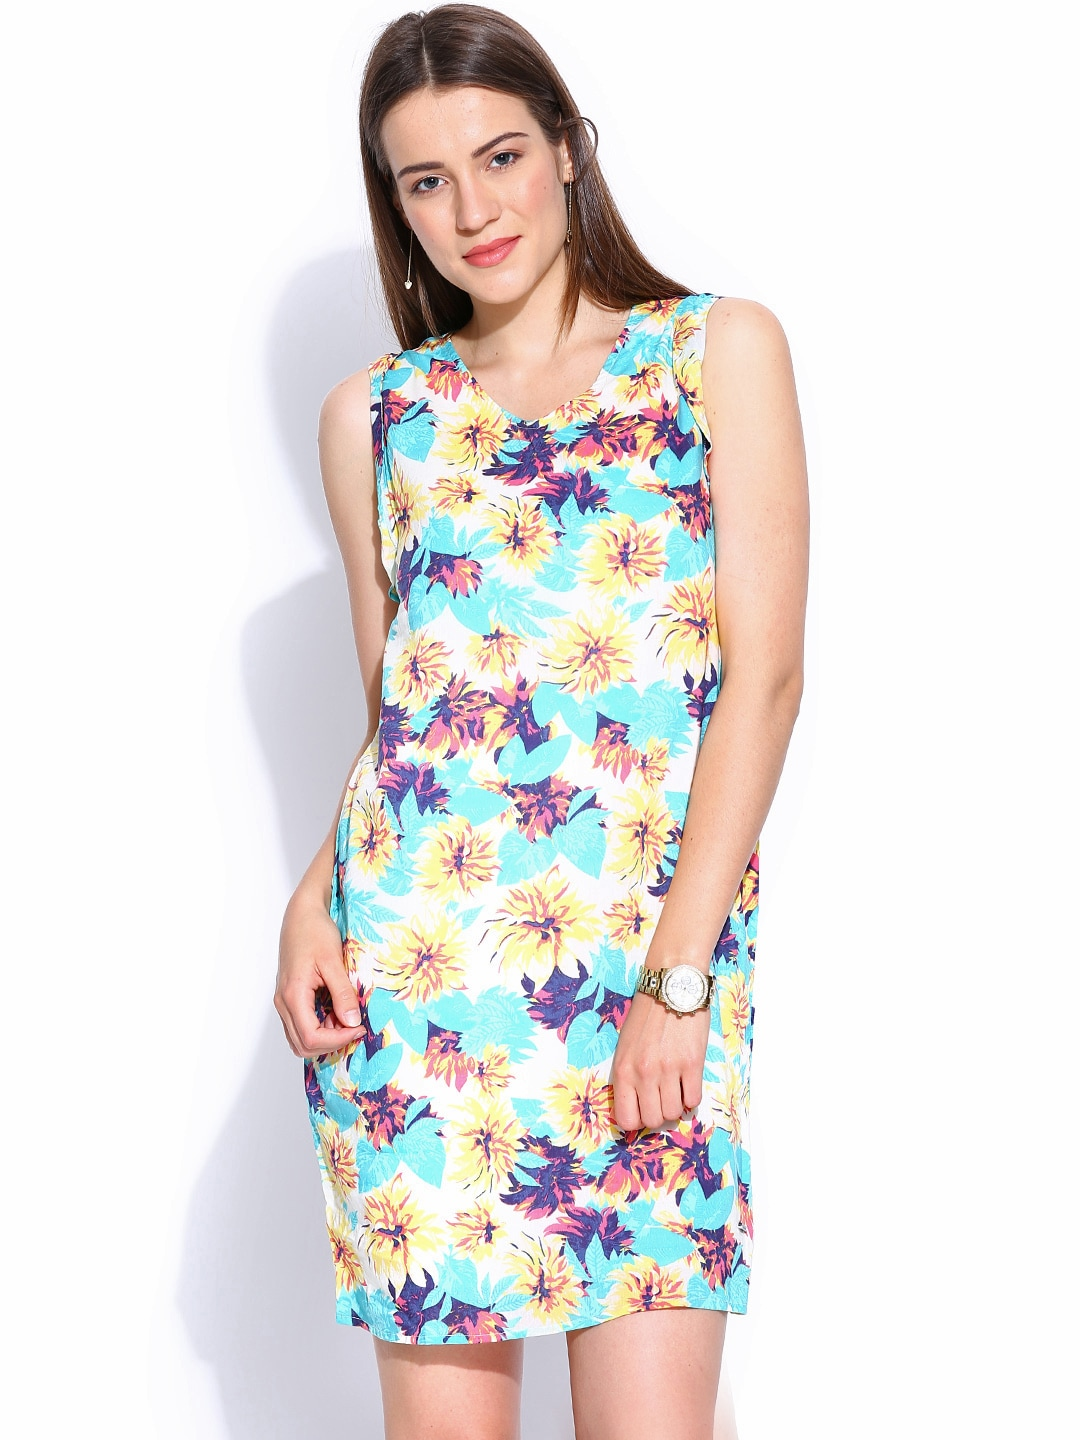 Pepe Jeans Blue & Yellow Floral Printed Shift Dress